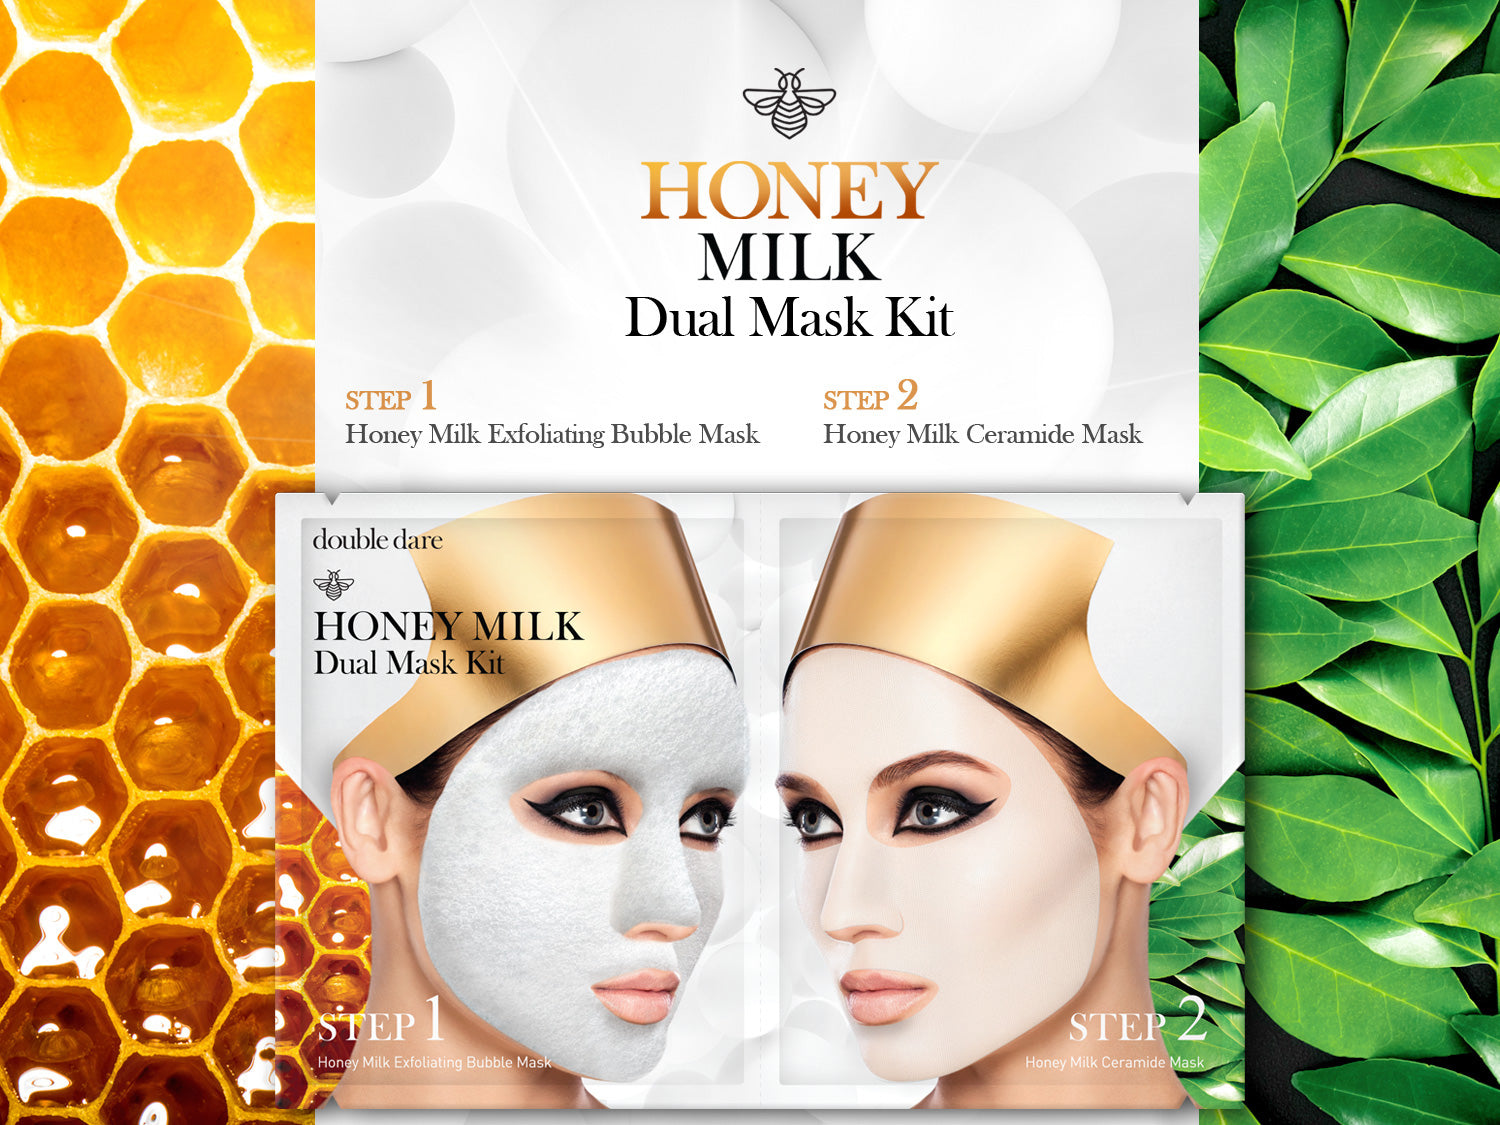 honey milk dual mask kit main ad